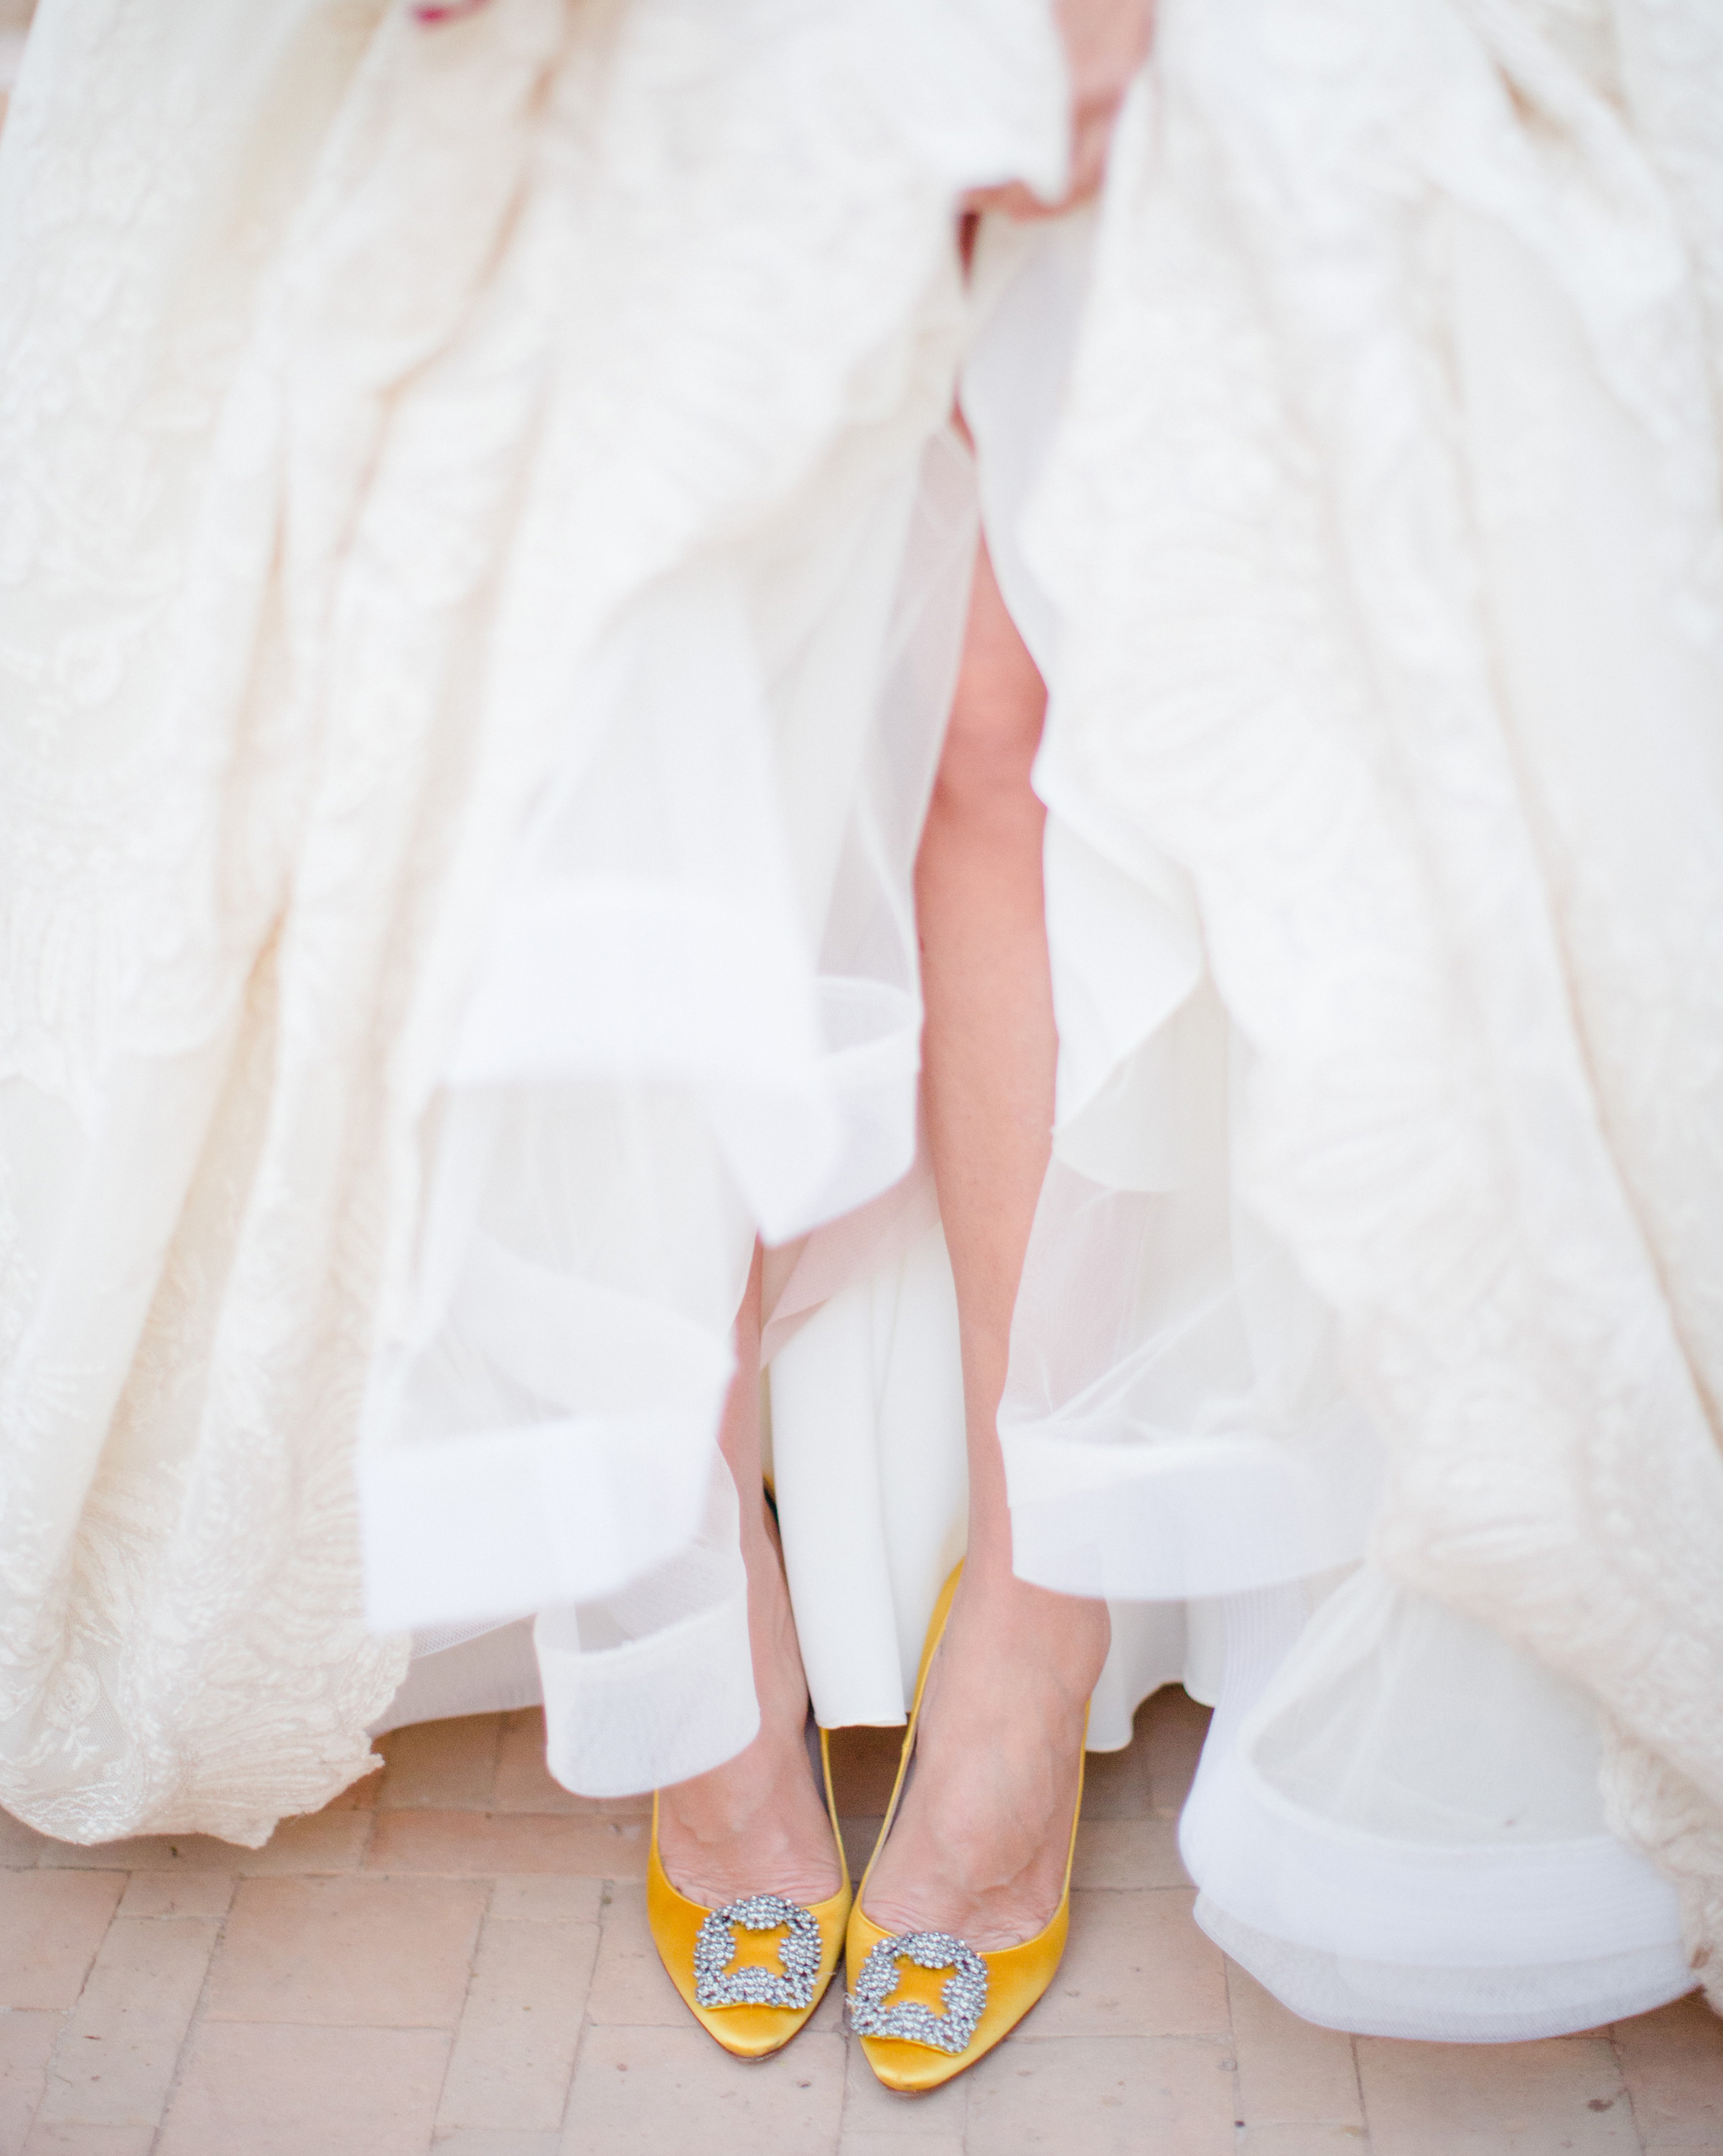 federica-tommaso-wedding-shoes-102-s112330-1015.jpg